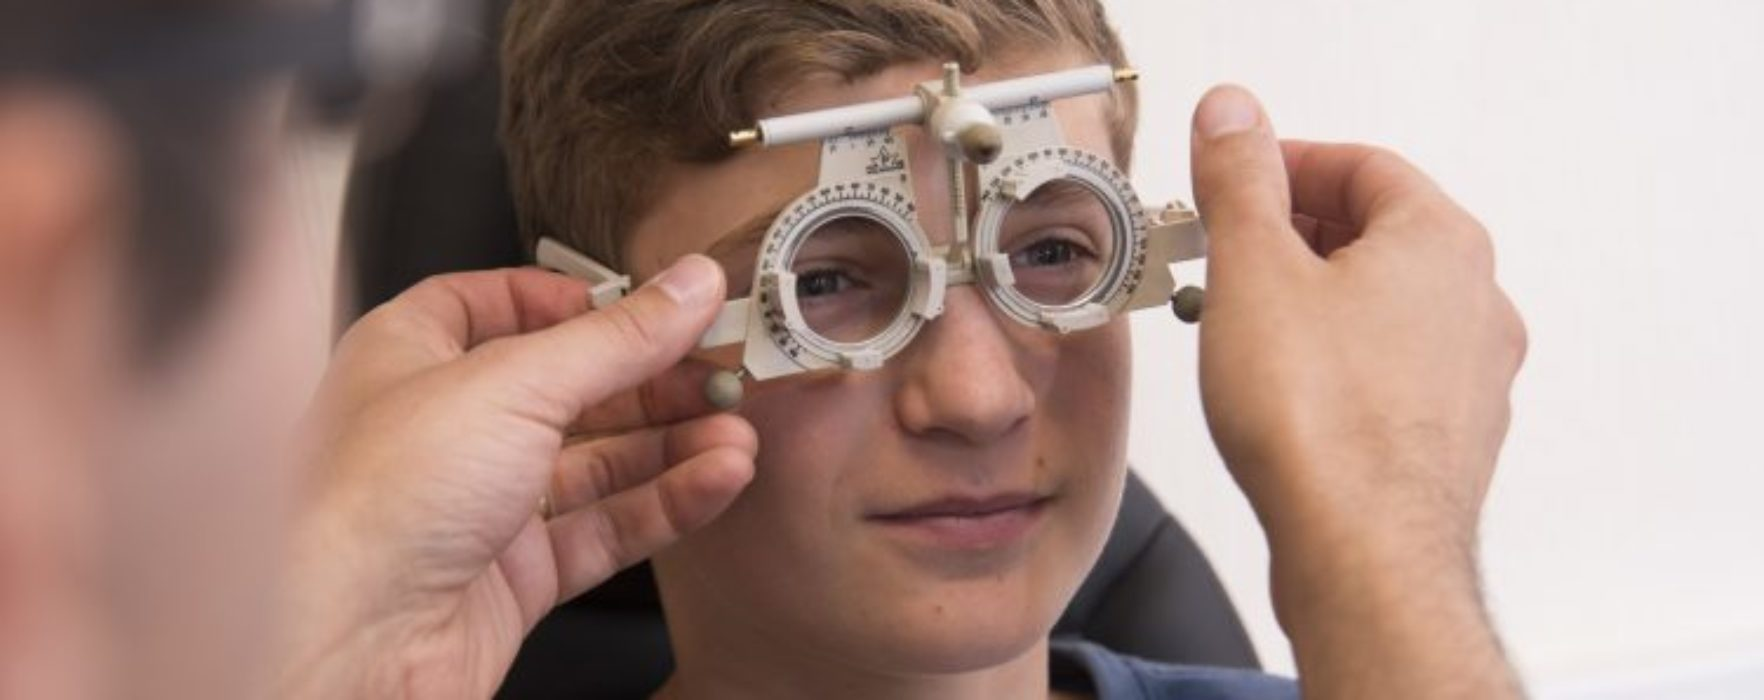 Too much screen time! Number of teens needing glasses doubles in seven years